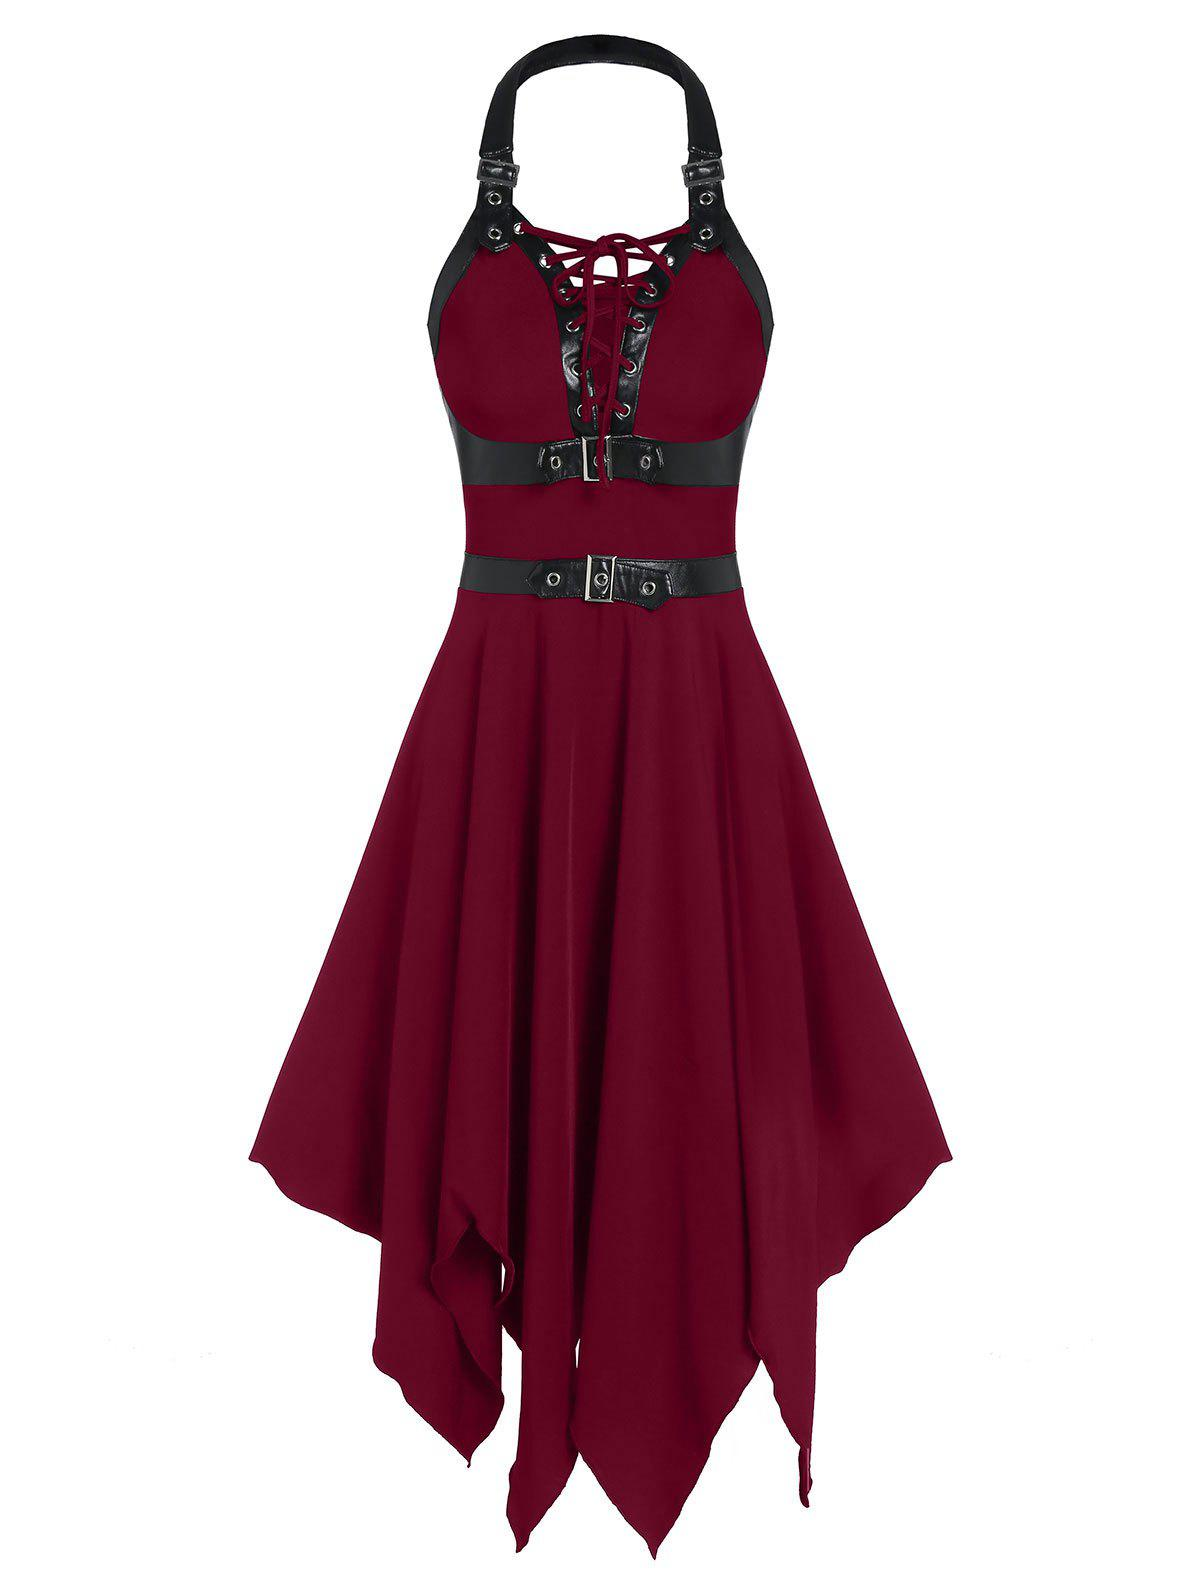 Faux Leather Strap Lace-up Cut Out Handkerchief Gothic Dress - RED WINE S